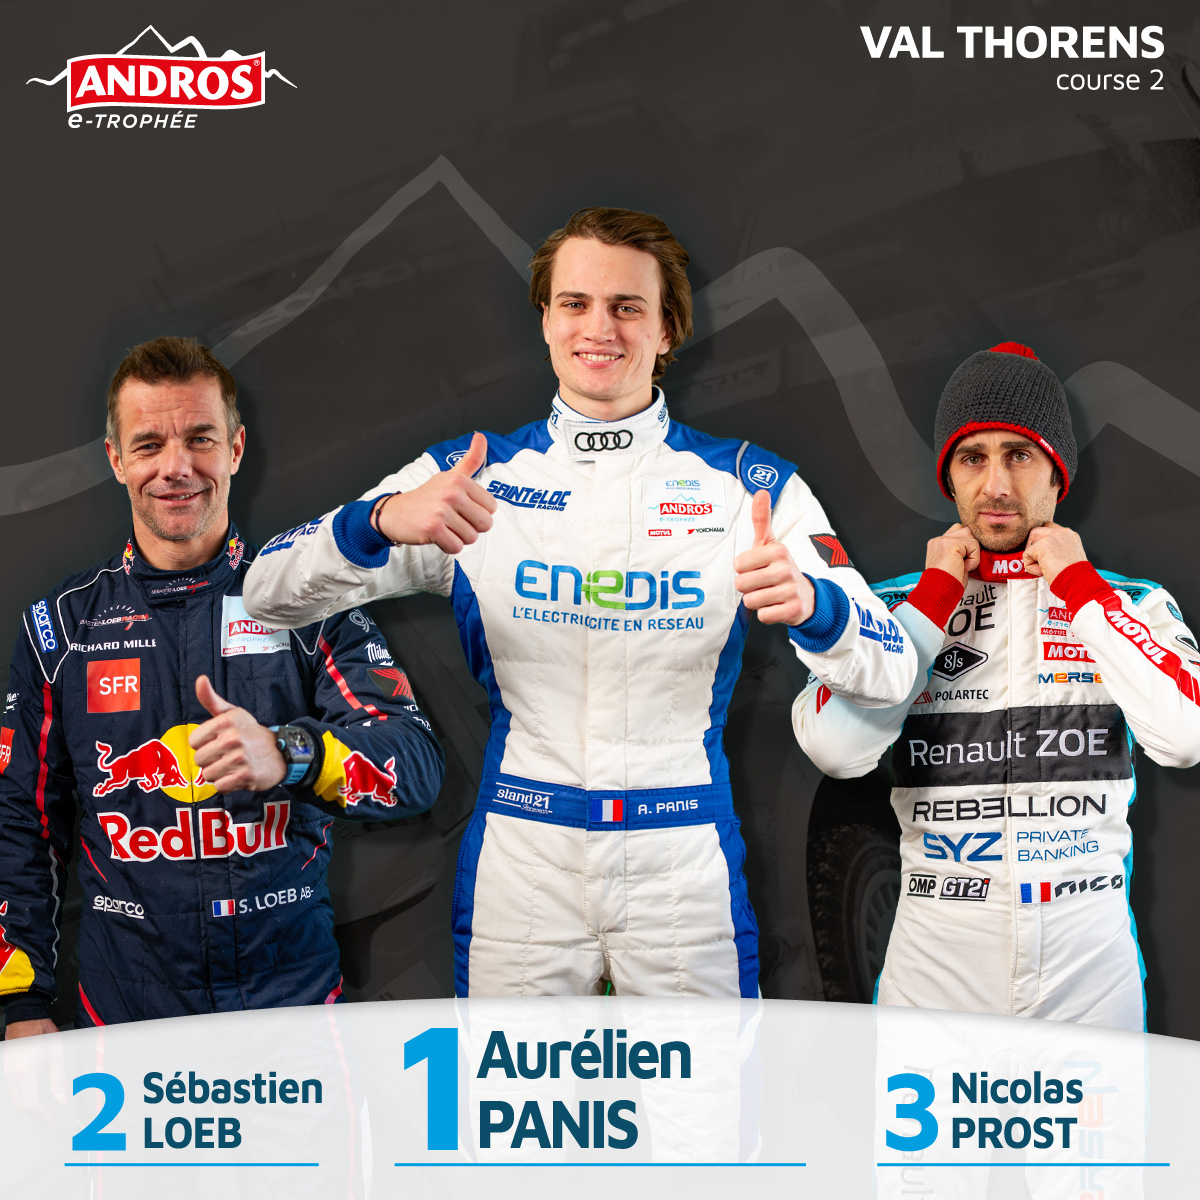 Visuel Winner PODIUM valtho 2